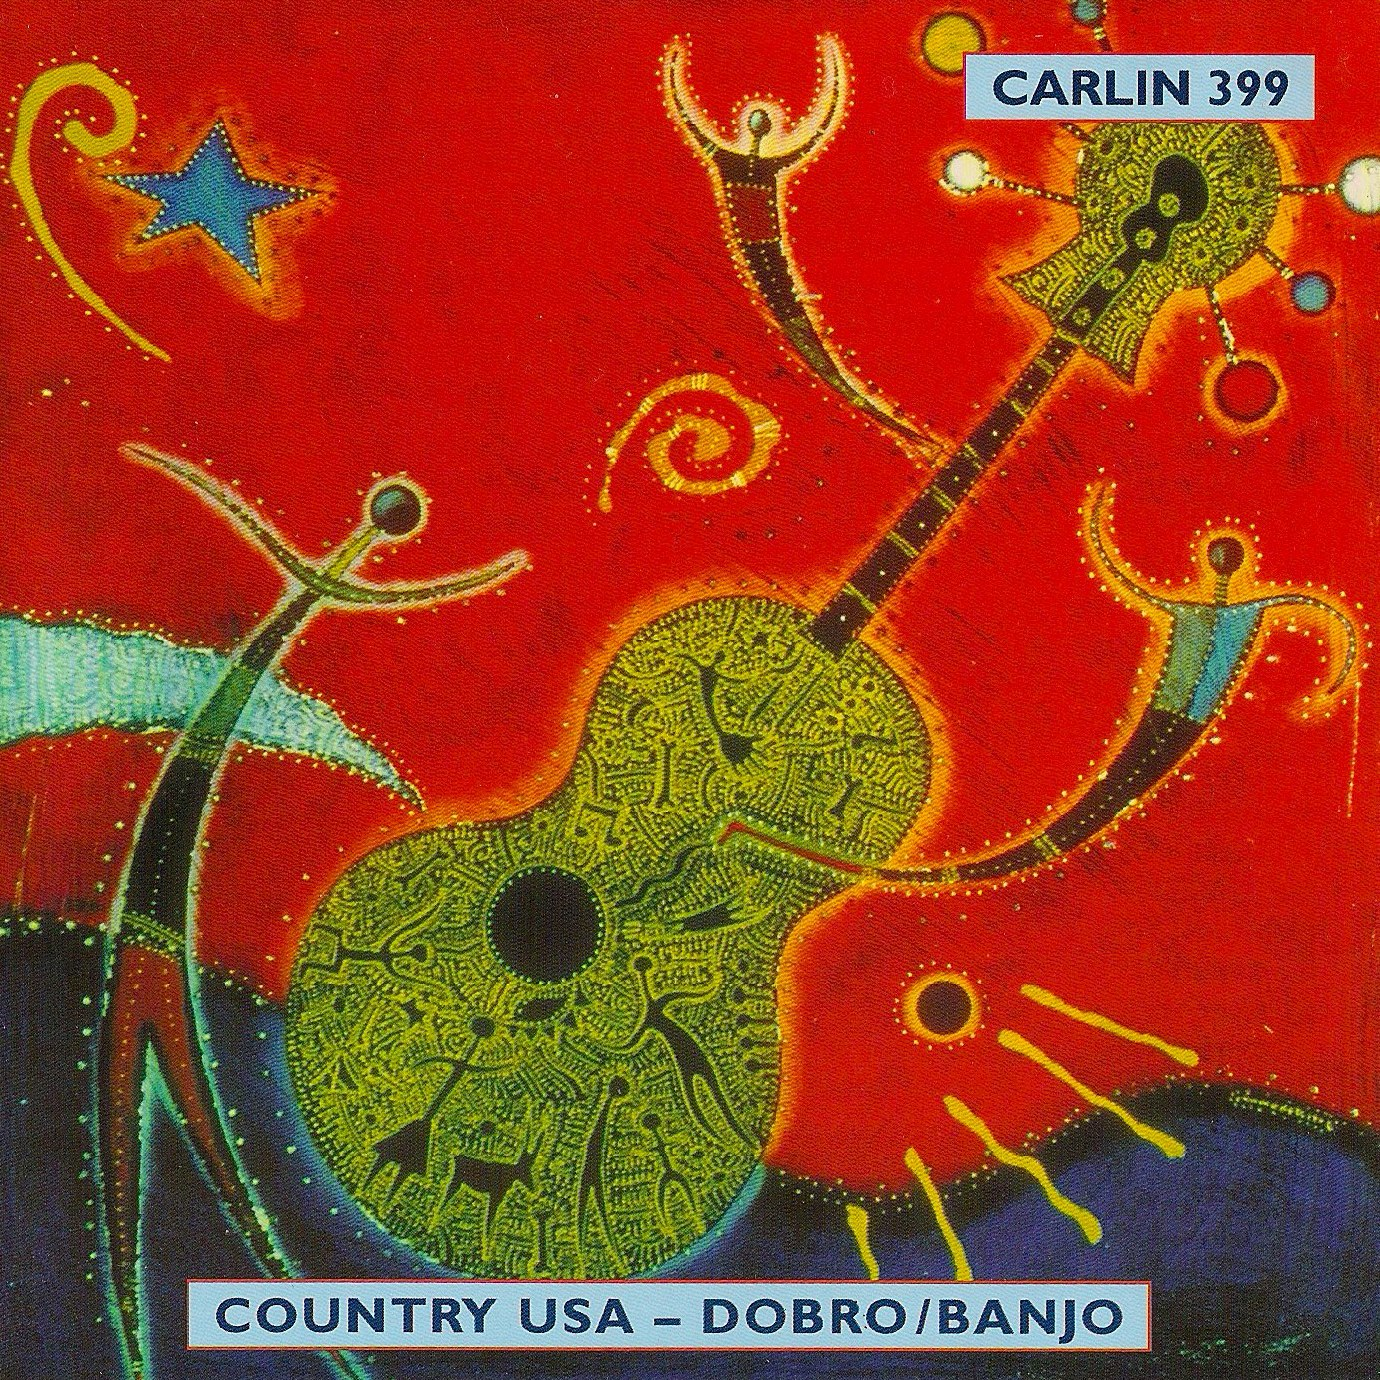 Artist:  Leon Hunt & Josh Clark   Title:  Country USA - Dobro / Banjo   Label:  Warner Chapell   Credit:  Composer, Co-Producer, Recording, Mixing, Mastering   Year:  2008